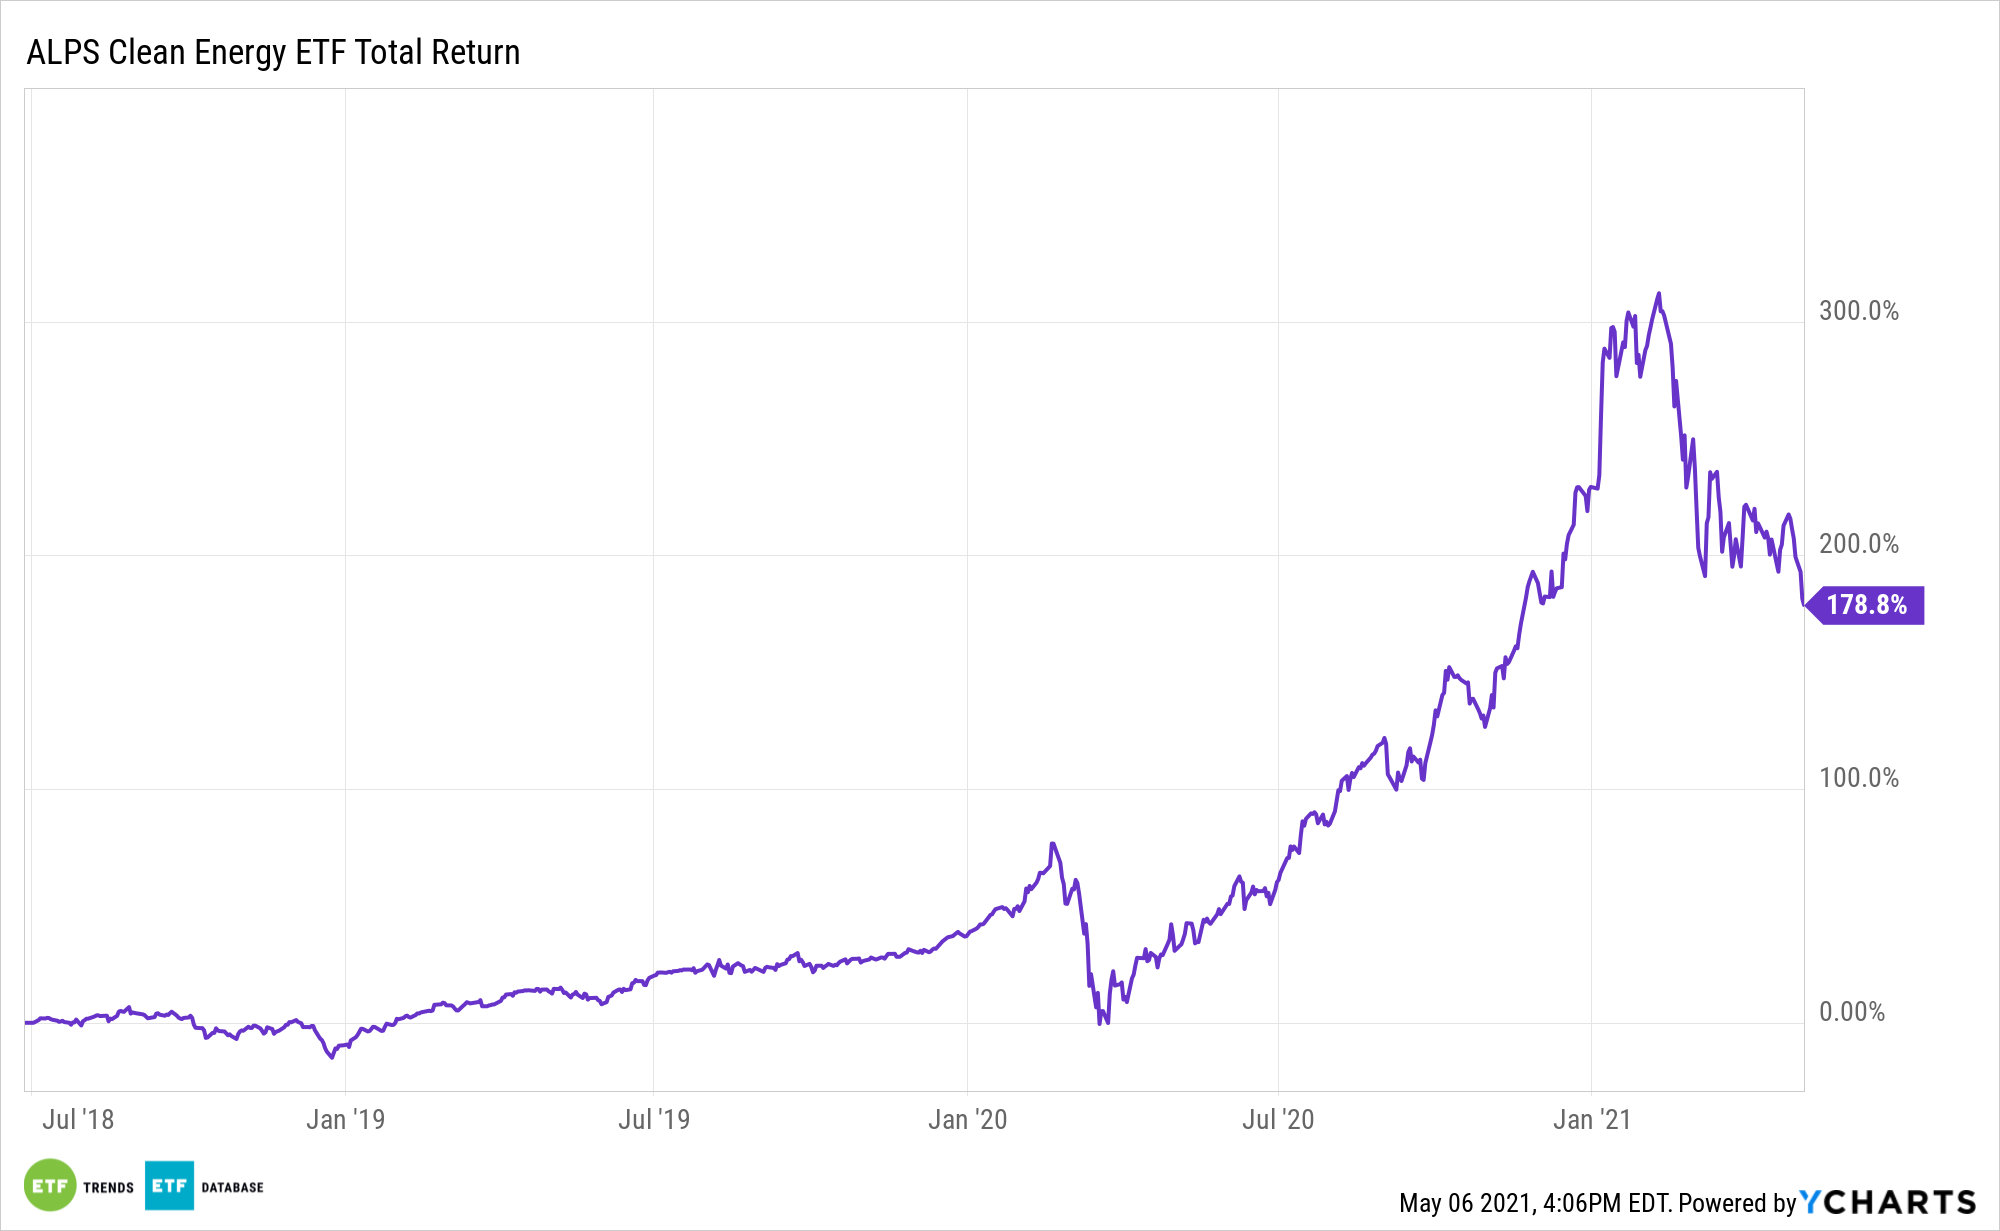 ACES 3 Year Total Return